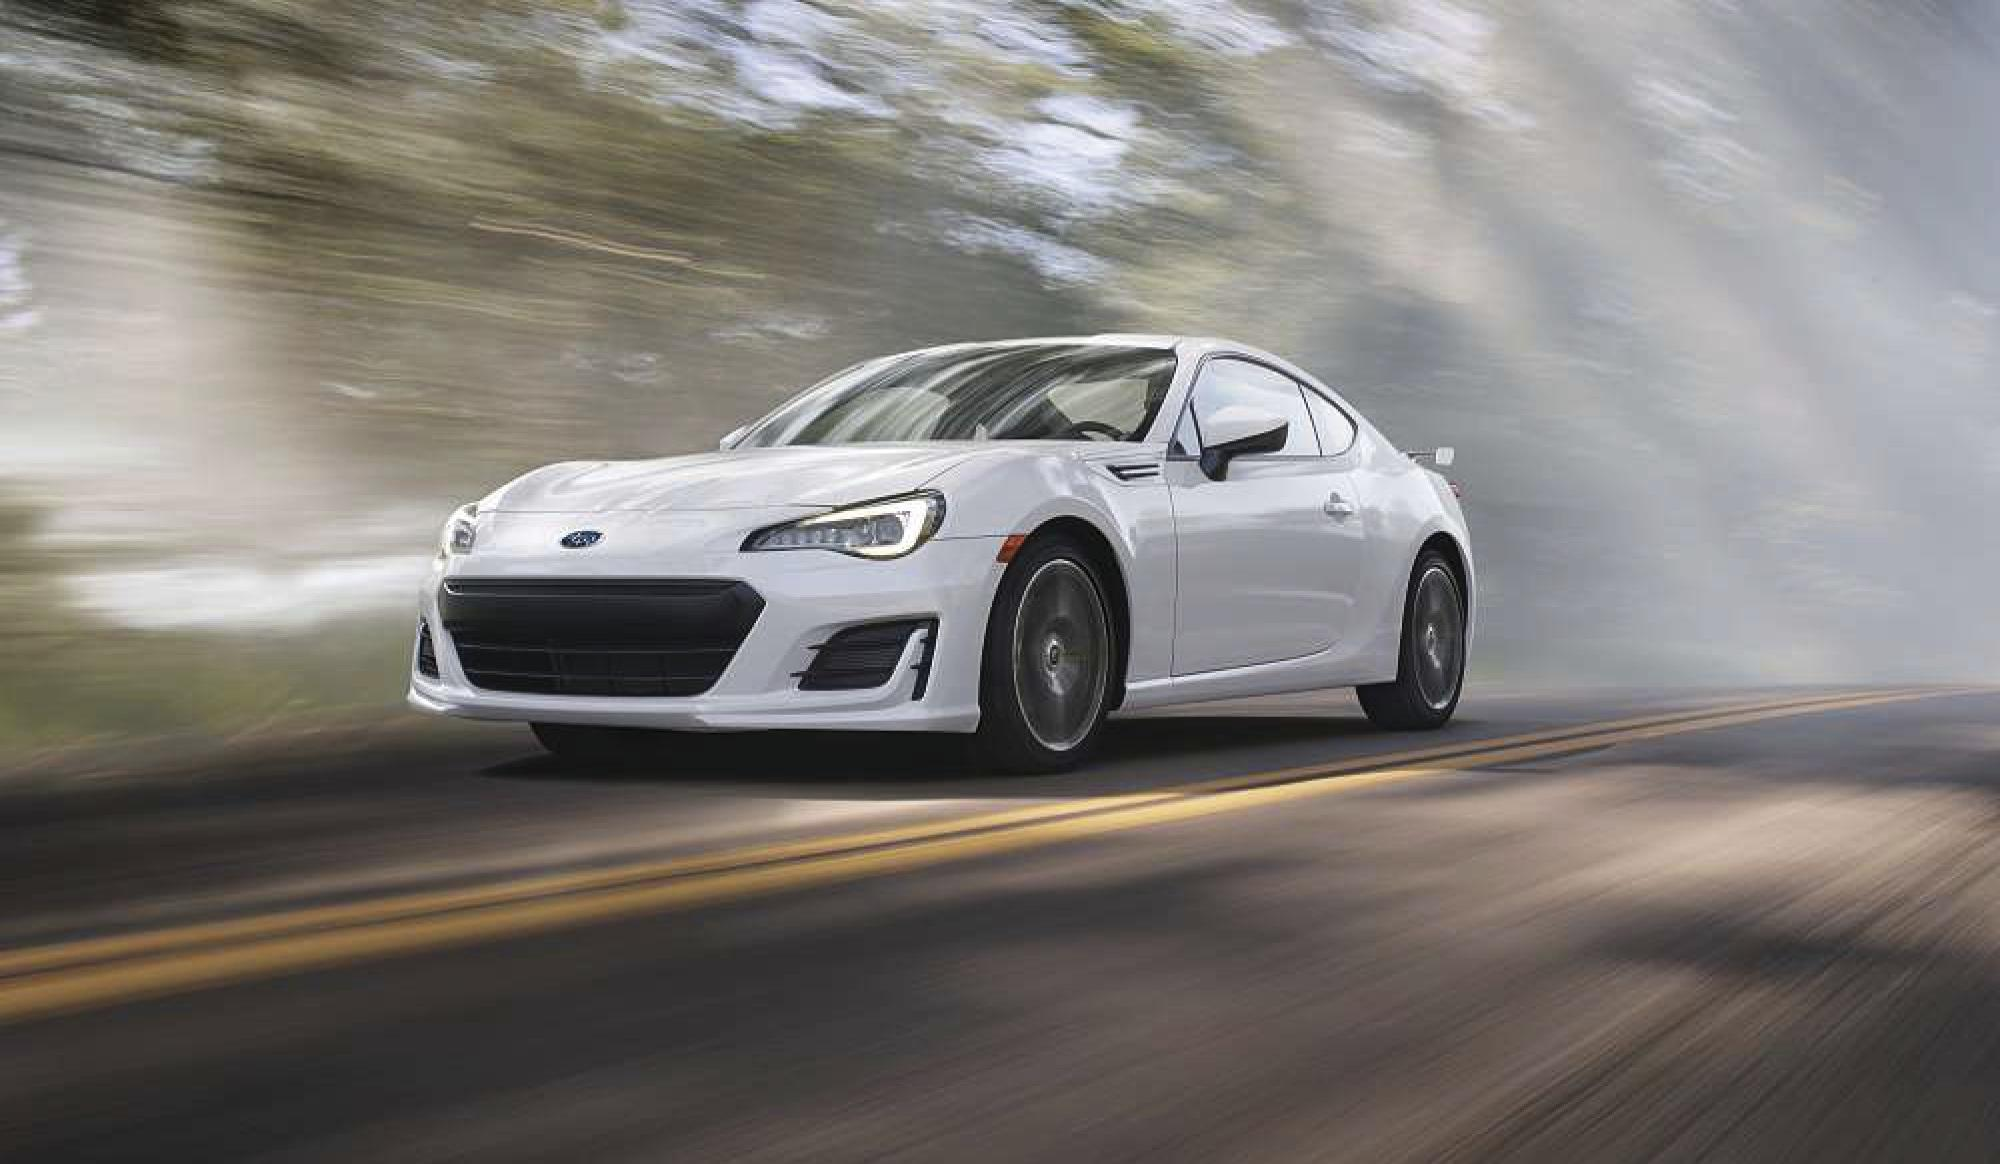 Subaru BRZ small sports coupe: Improved smiles-per-gallon